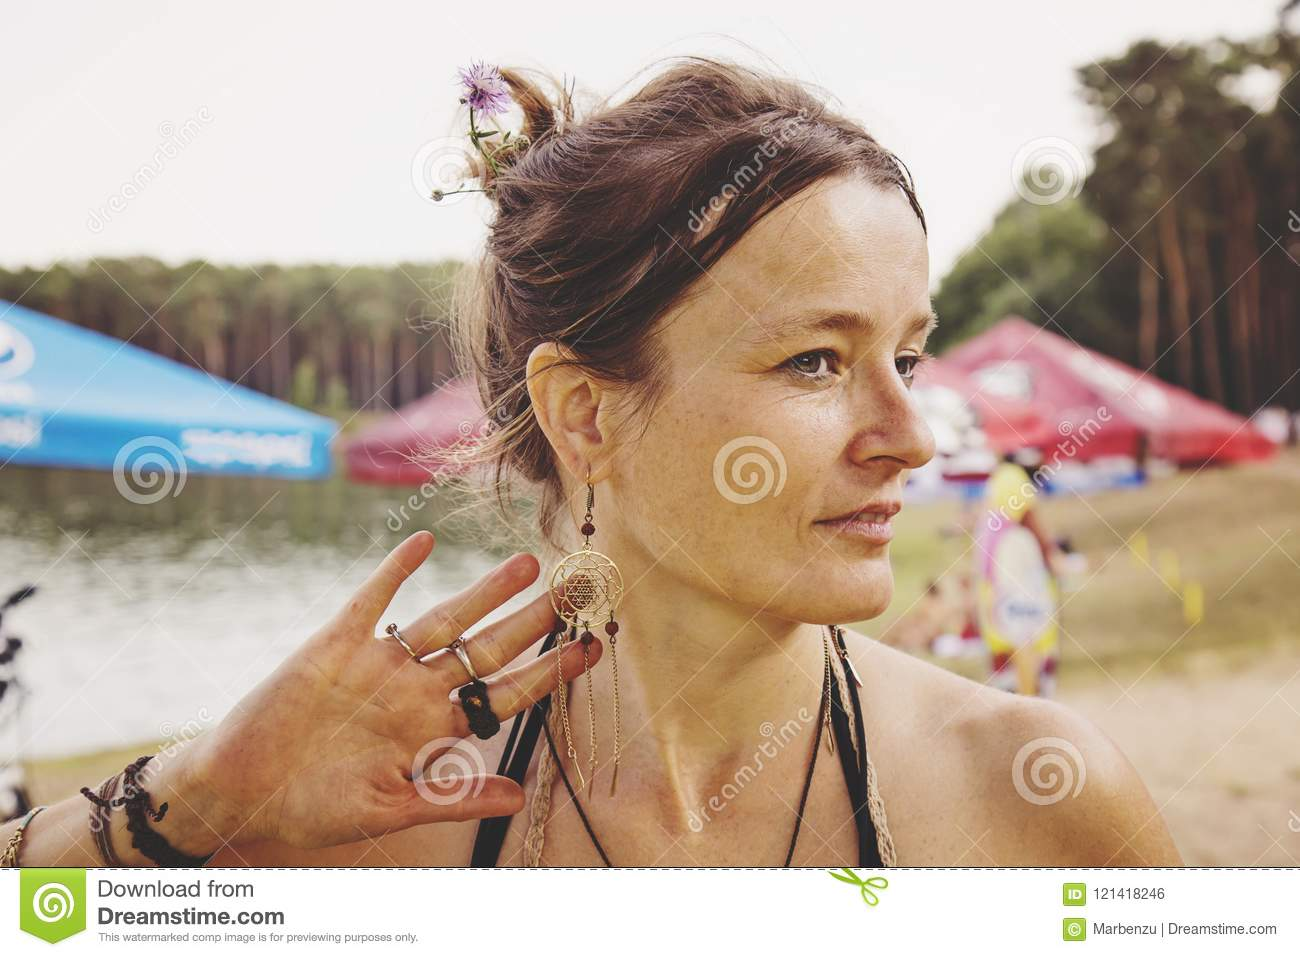 Young woman sitting by a lake and playing with her earring